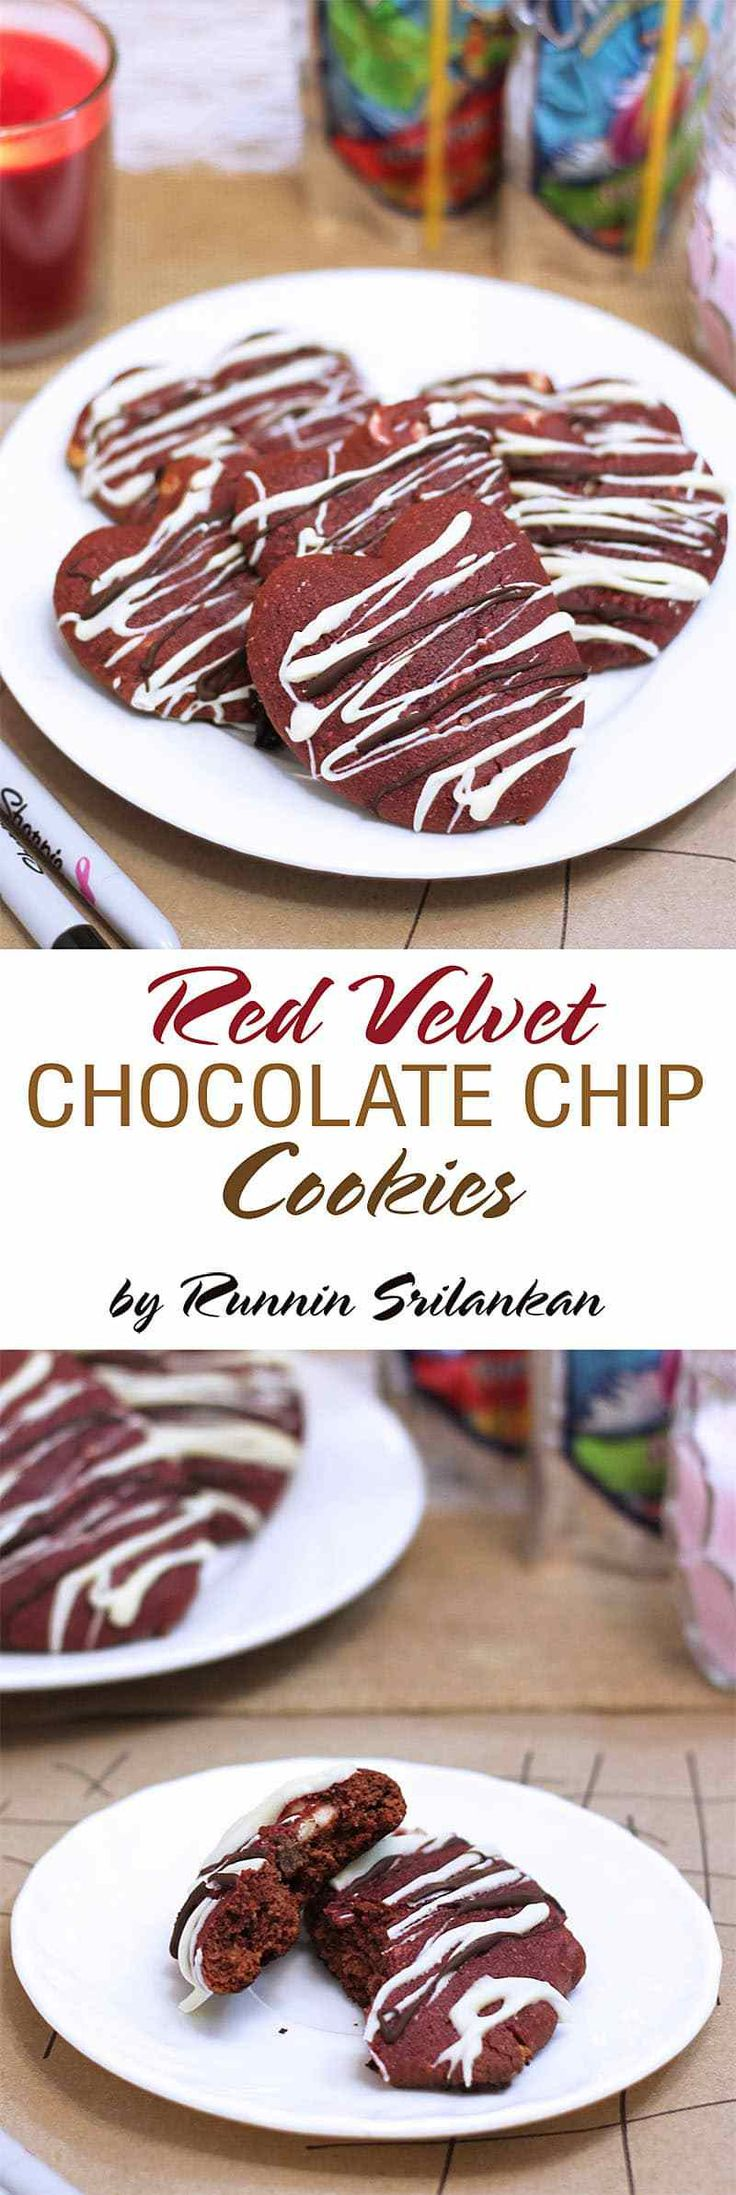 Red Velvet Chocolate Chip Cookies for #Valentinesday